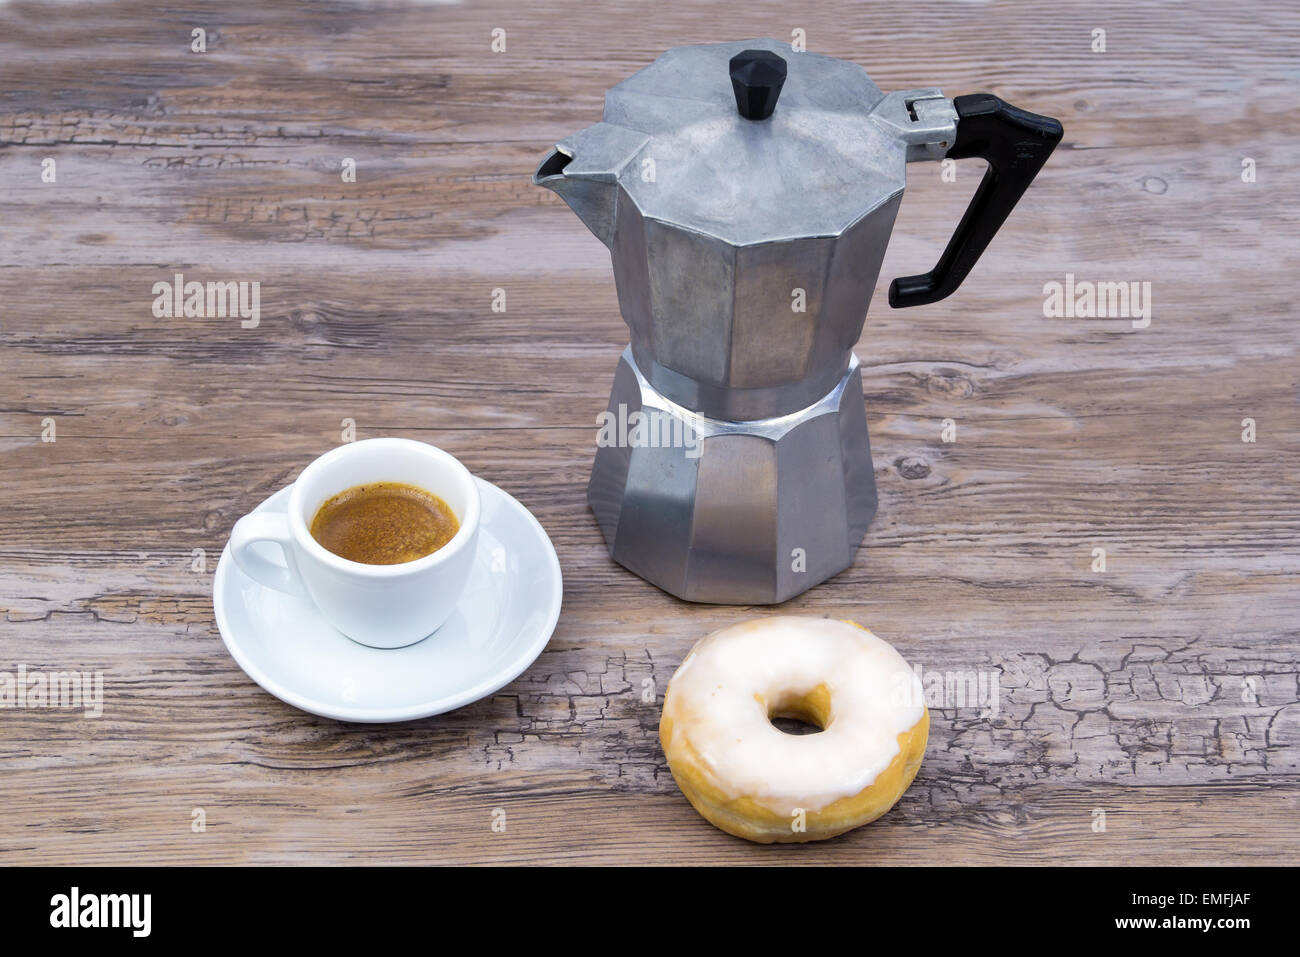 Espresso with espresso maker and a glazed donut on a wooden table from slightly above - Stock Image